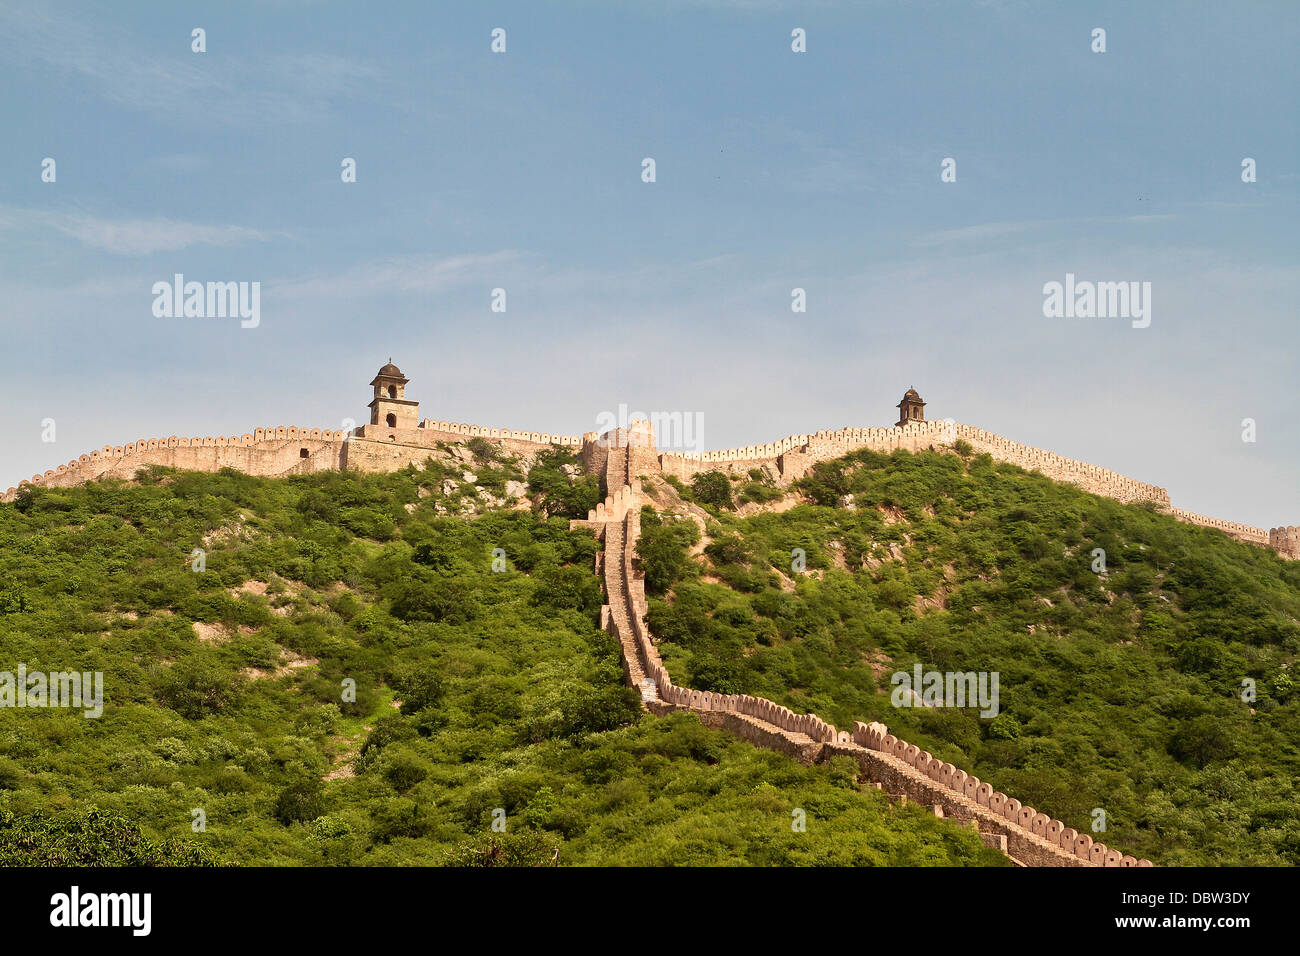 View of fortifications around Amer Fort in Amer Raasthan India - Stock Image